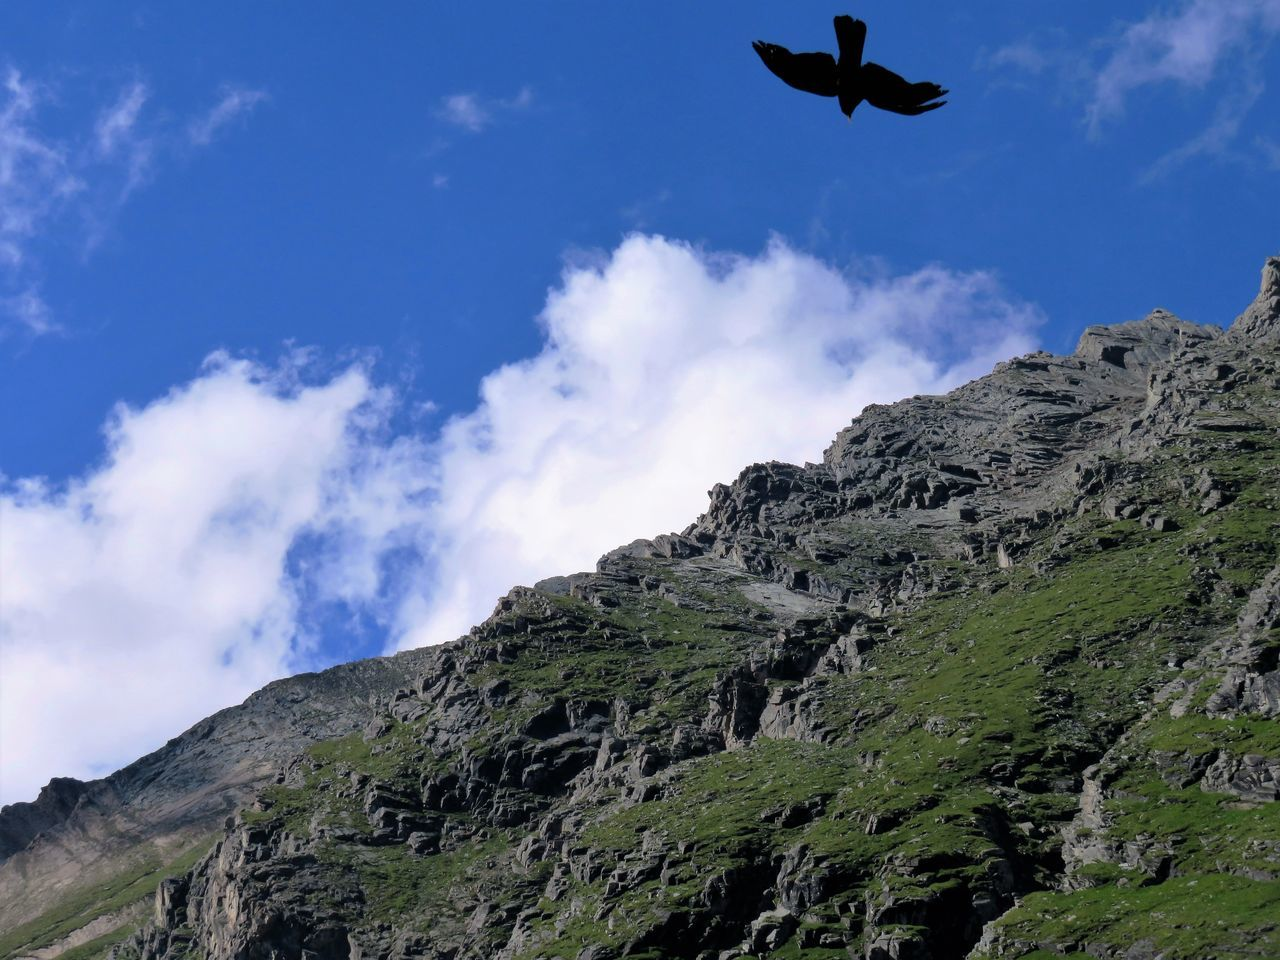 Alpine Chough Alps Austria Beauty In Nature Bird Chough Climbing Cloudy Flying Hill Idyllic Landscape Mountain Mountain Range Natural Park Nature Non-urban Scene Outdoors Pathway Protected Area Remote Scenics Tranquility Traveling Trip Photo